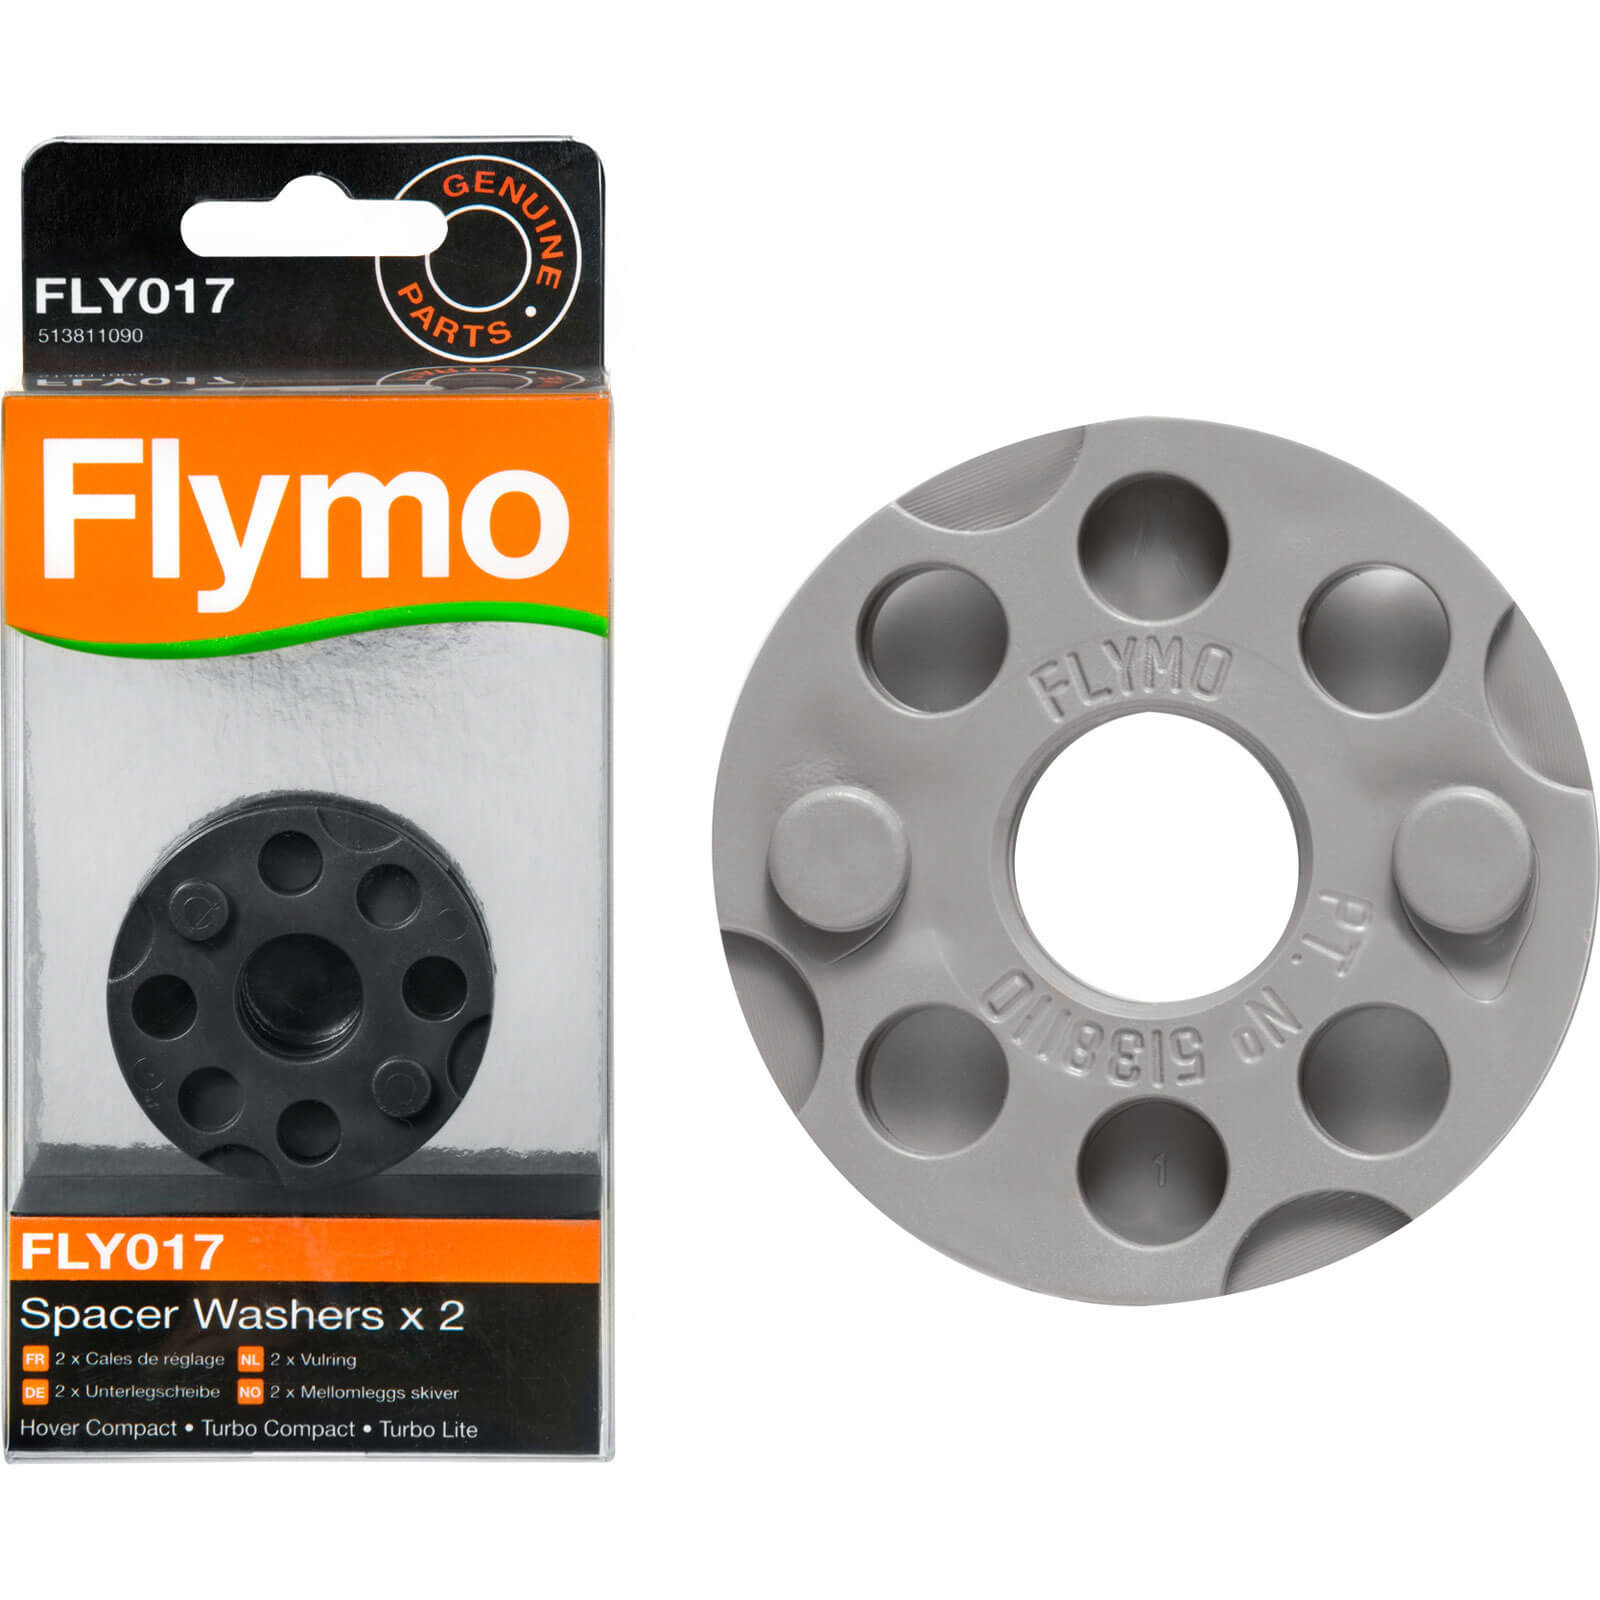 Flymo FLY017 Genuine Spacer Washers for Lawnmowers 2